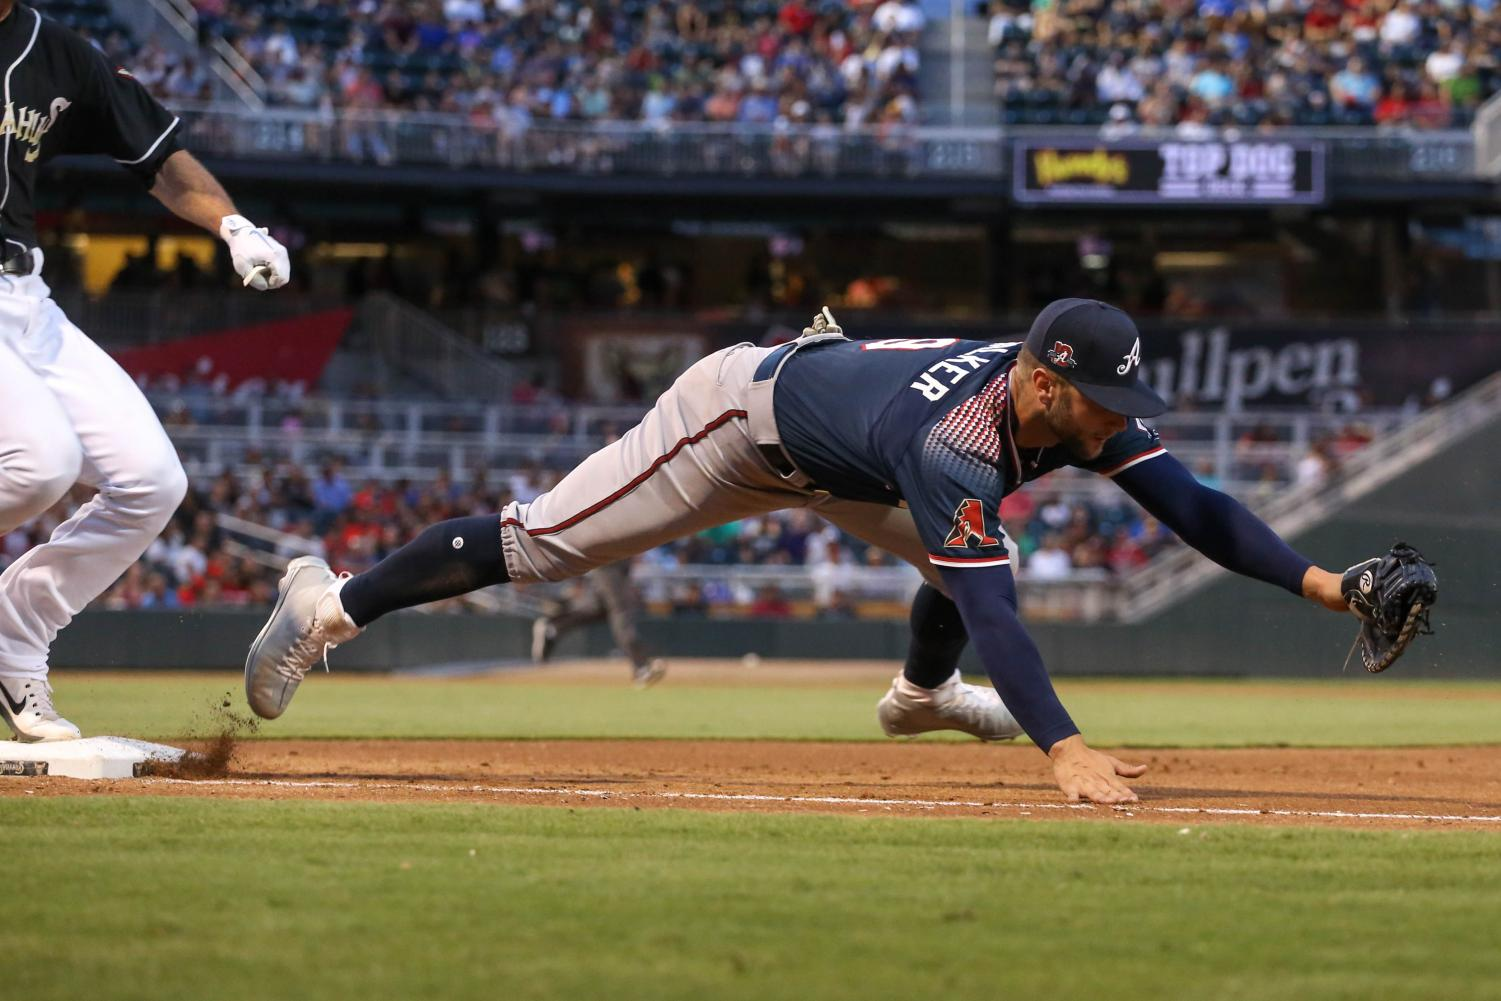 Reno+Aces+first+basemen+Christian+Walker+stretches+out+to+catch+the+ball+but+drops+it.